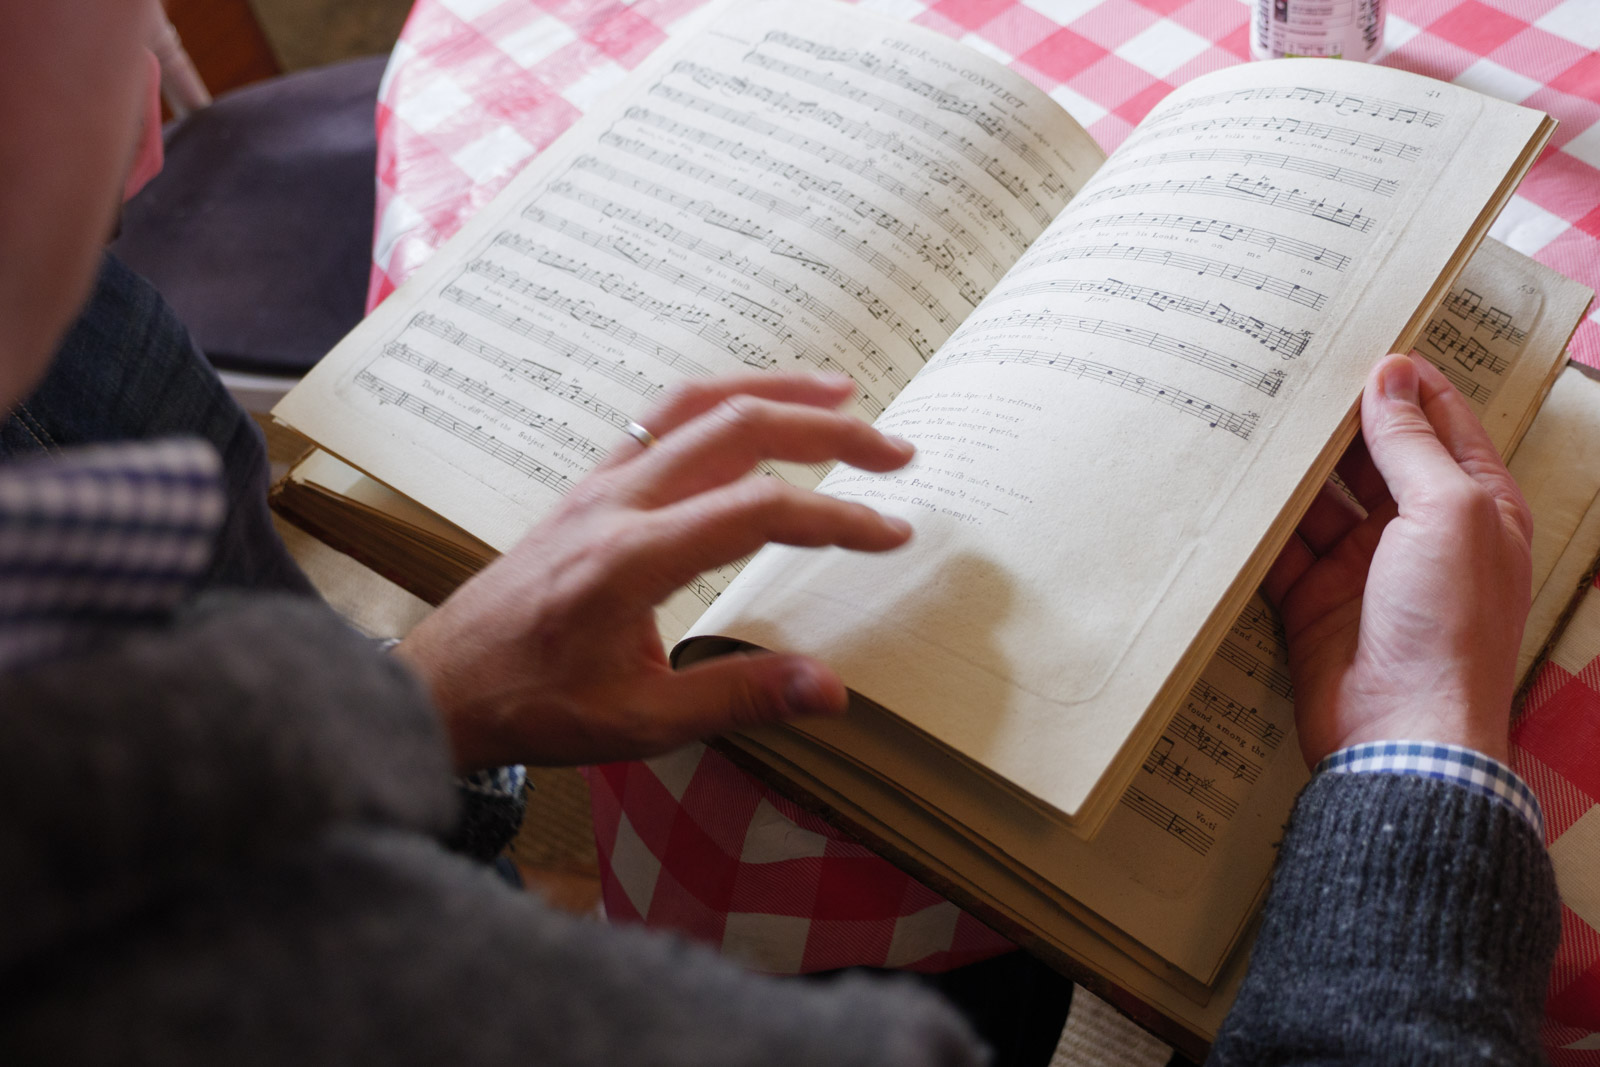 Martin Perkins examining an 18th century music copy